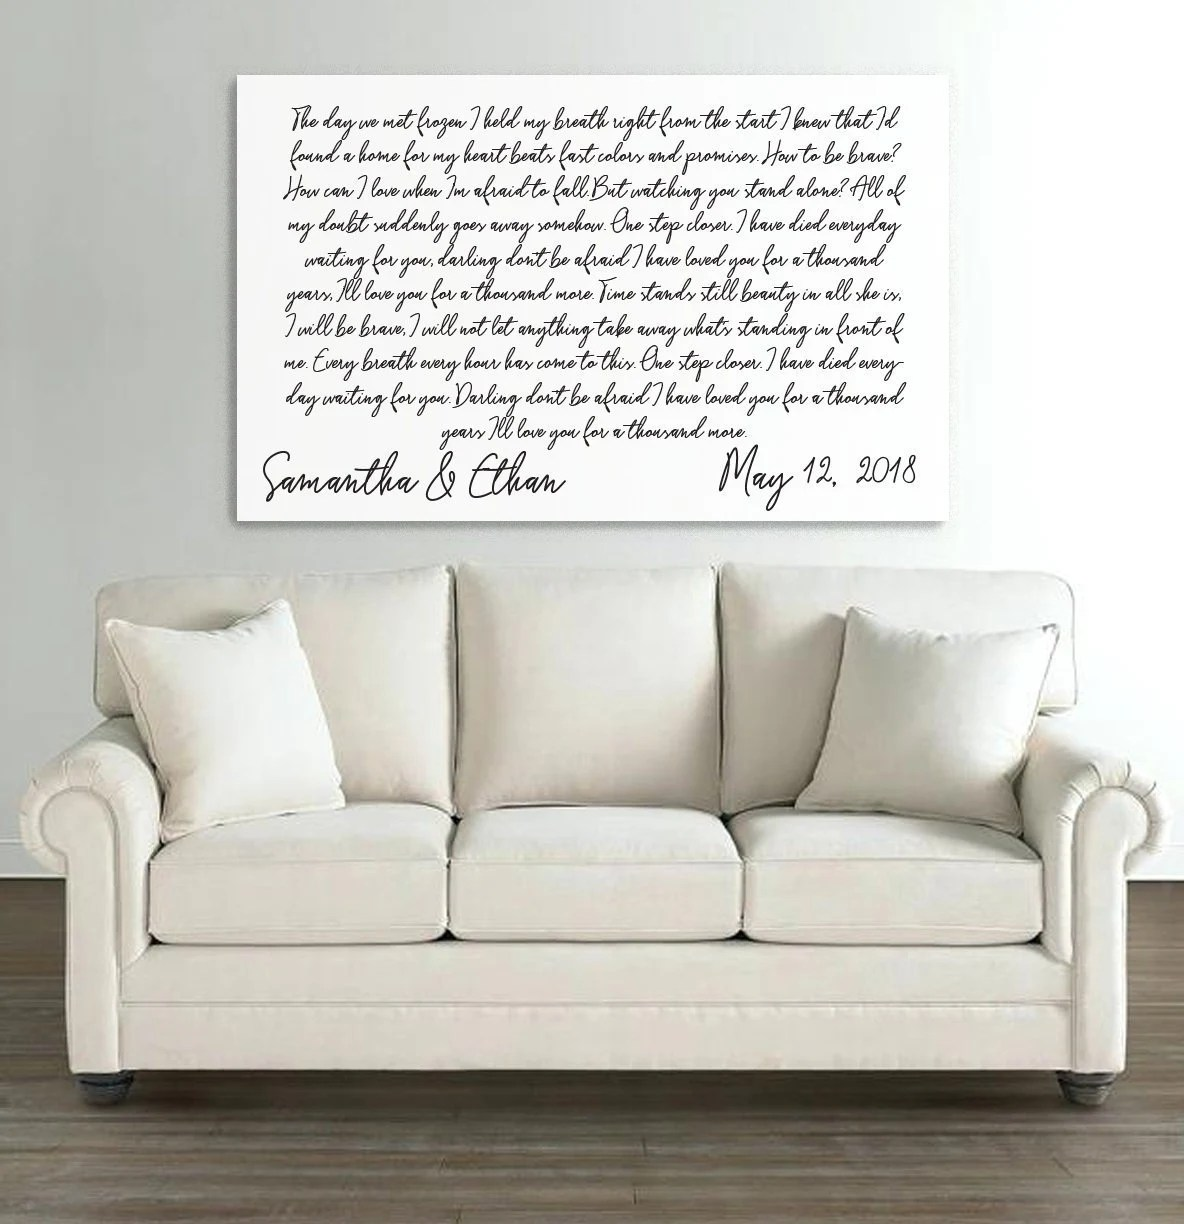 Sofa Easy Lyrics First Dance Lyrics On Canvas Your Wedding Song On Canvas 1st Year Anniversary Gift Couples Gift